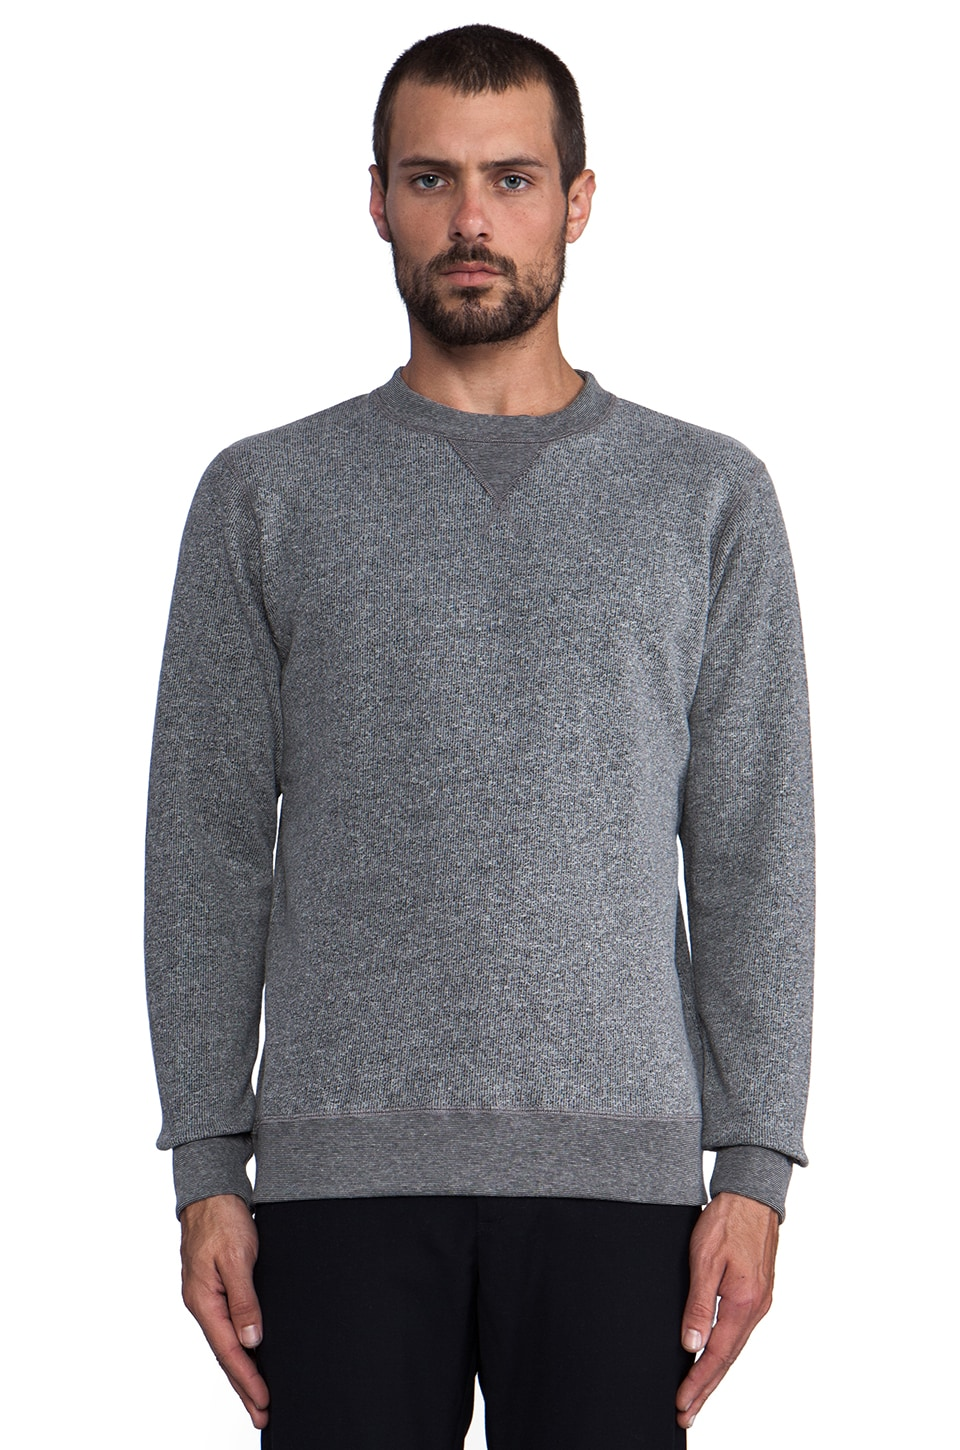 United Stock Dry Goods French Terry Crew Neck in Gray